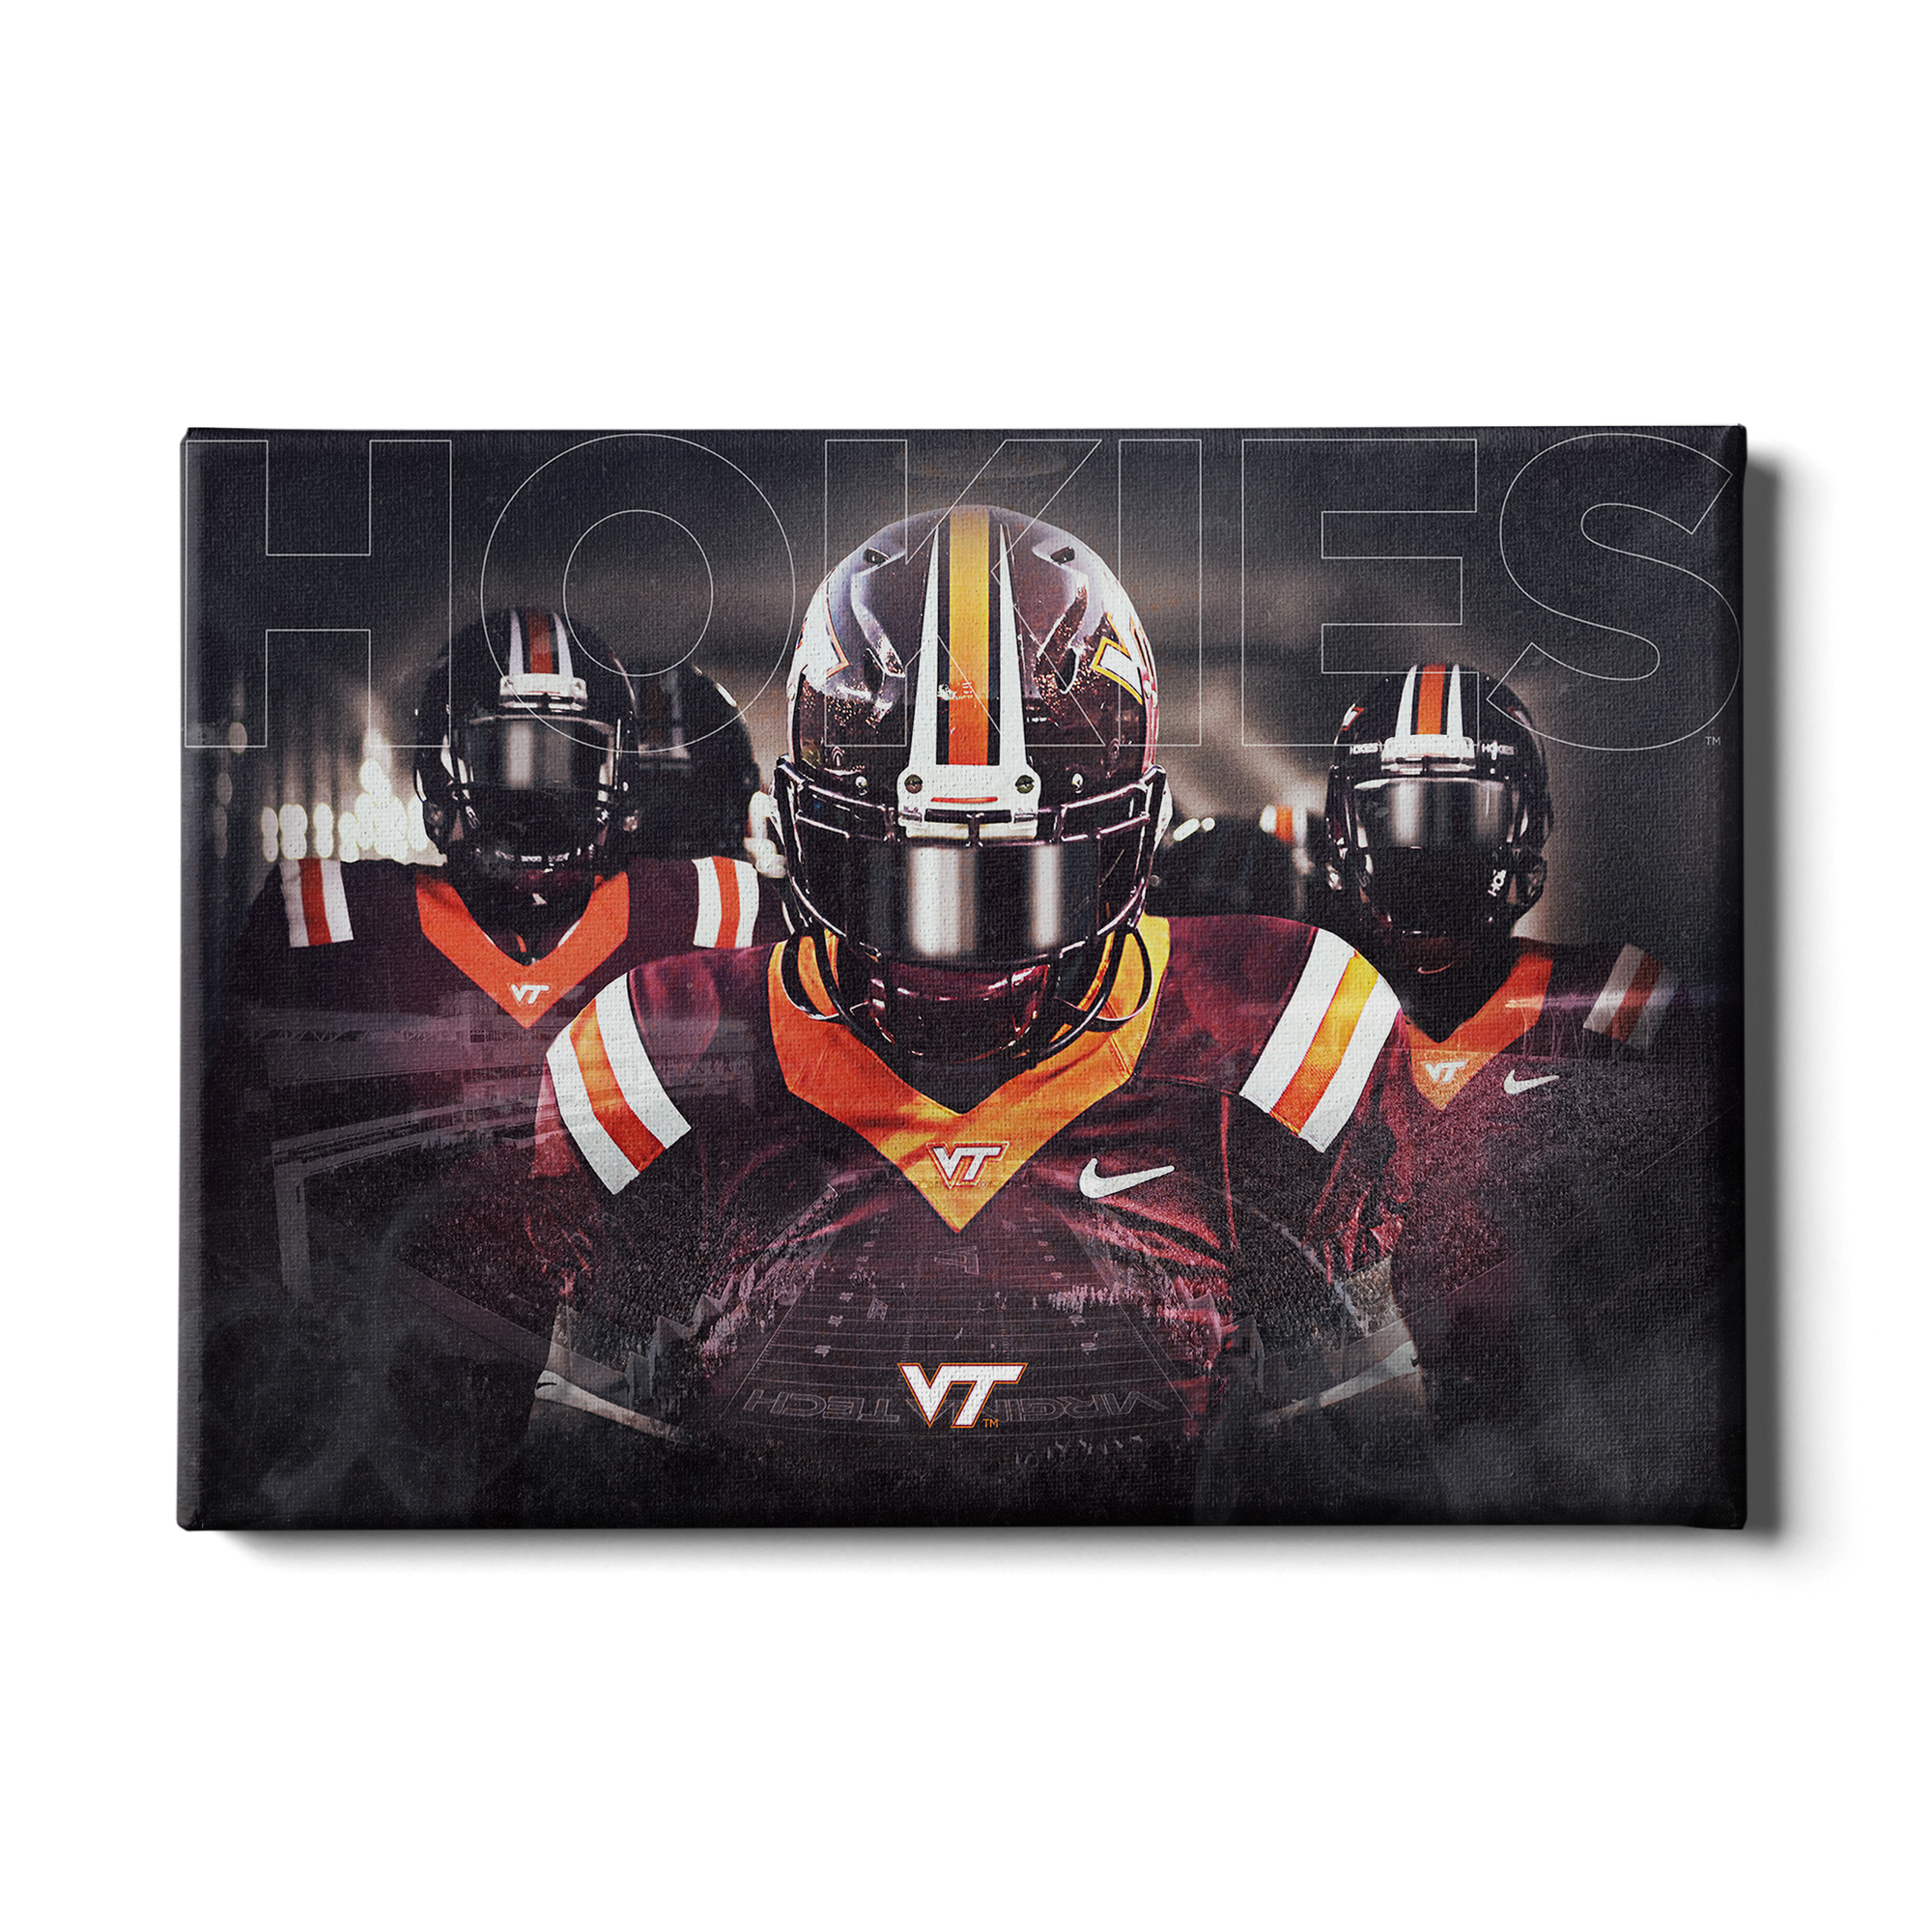 Virginia Tech Hokies - Hokie Entrance #Canvas